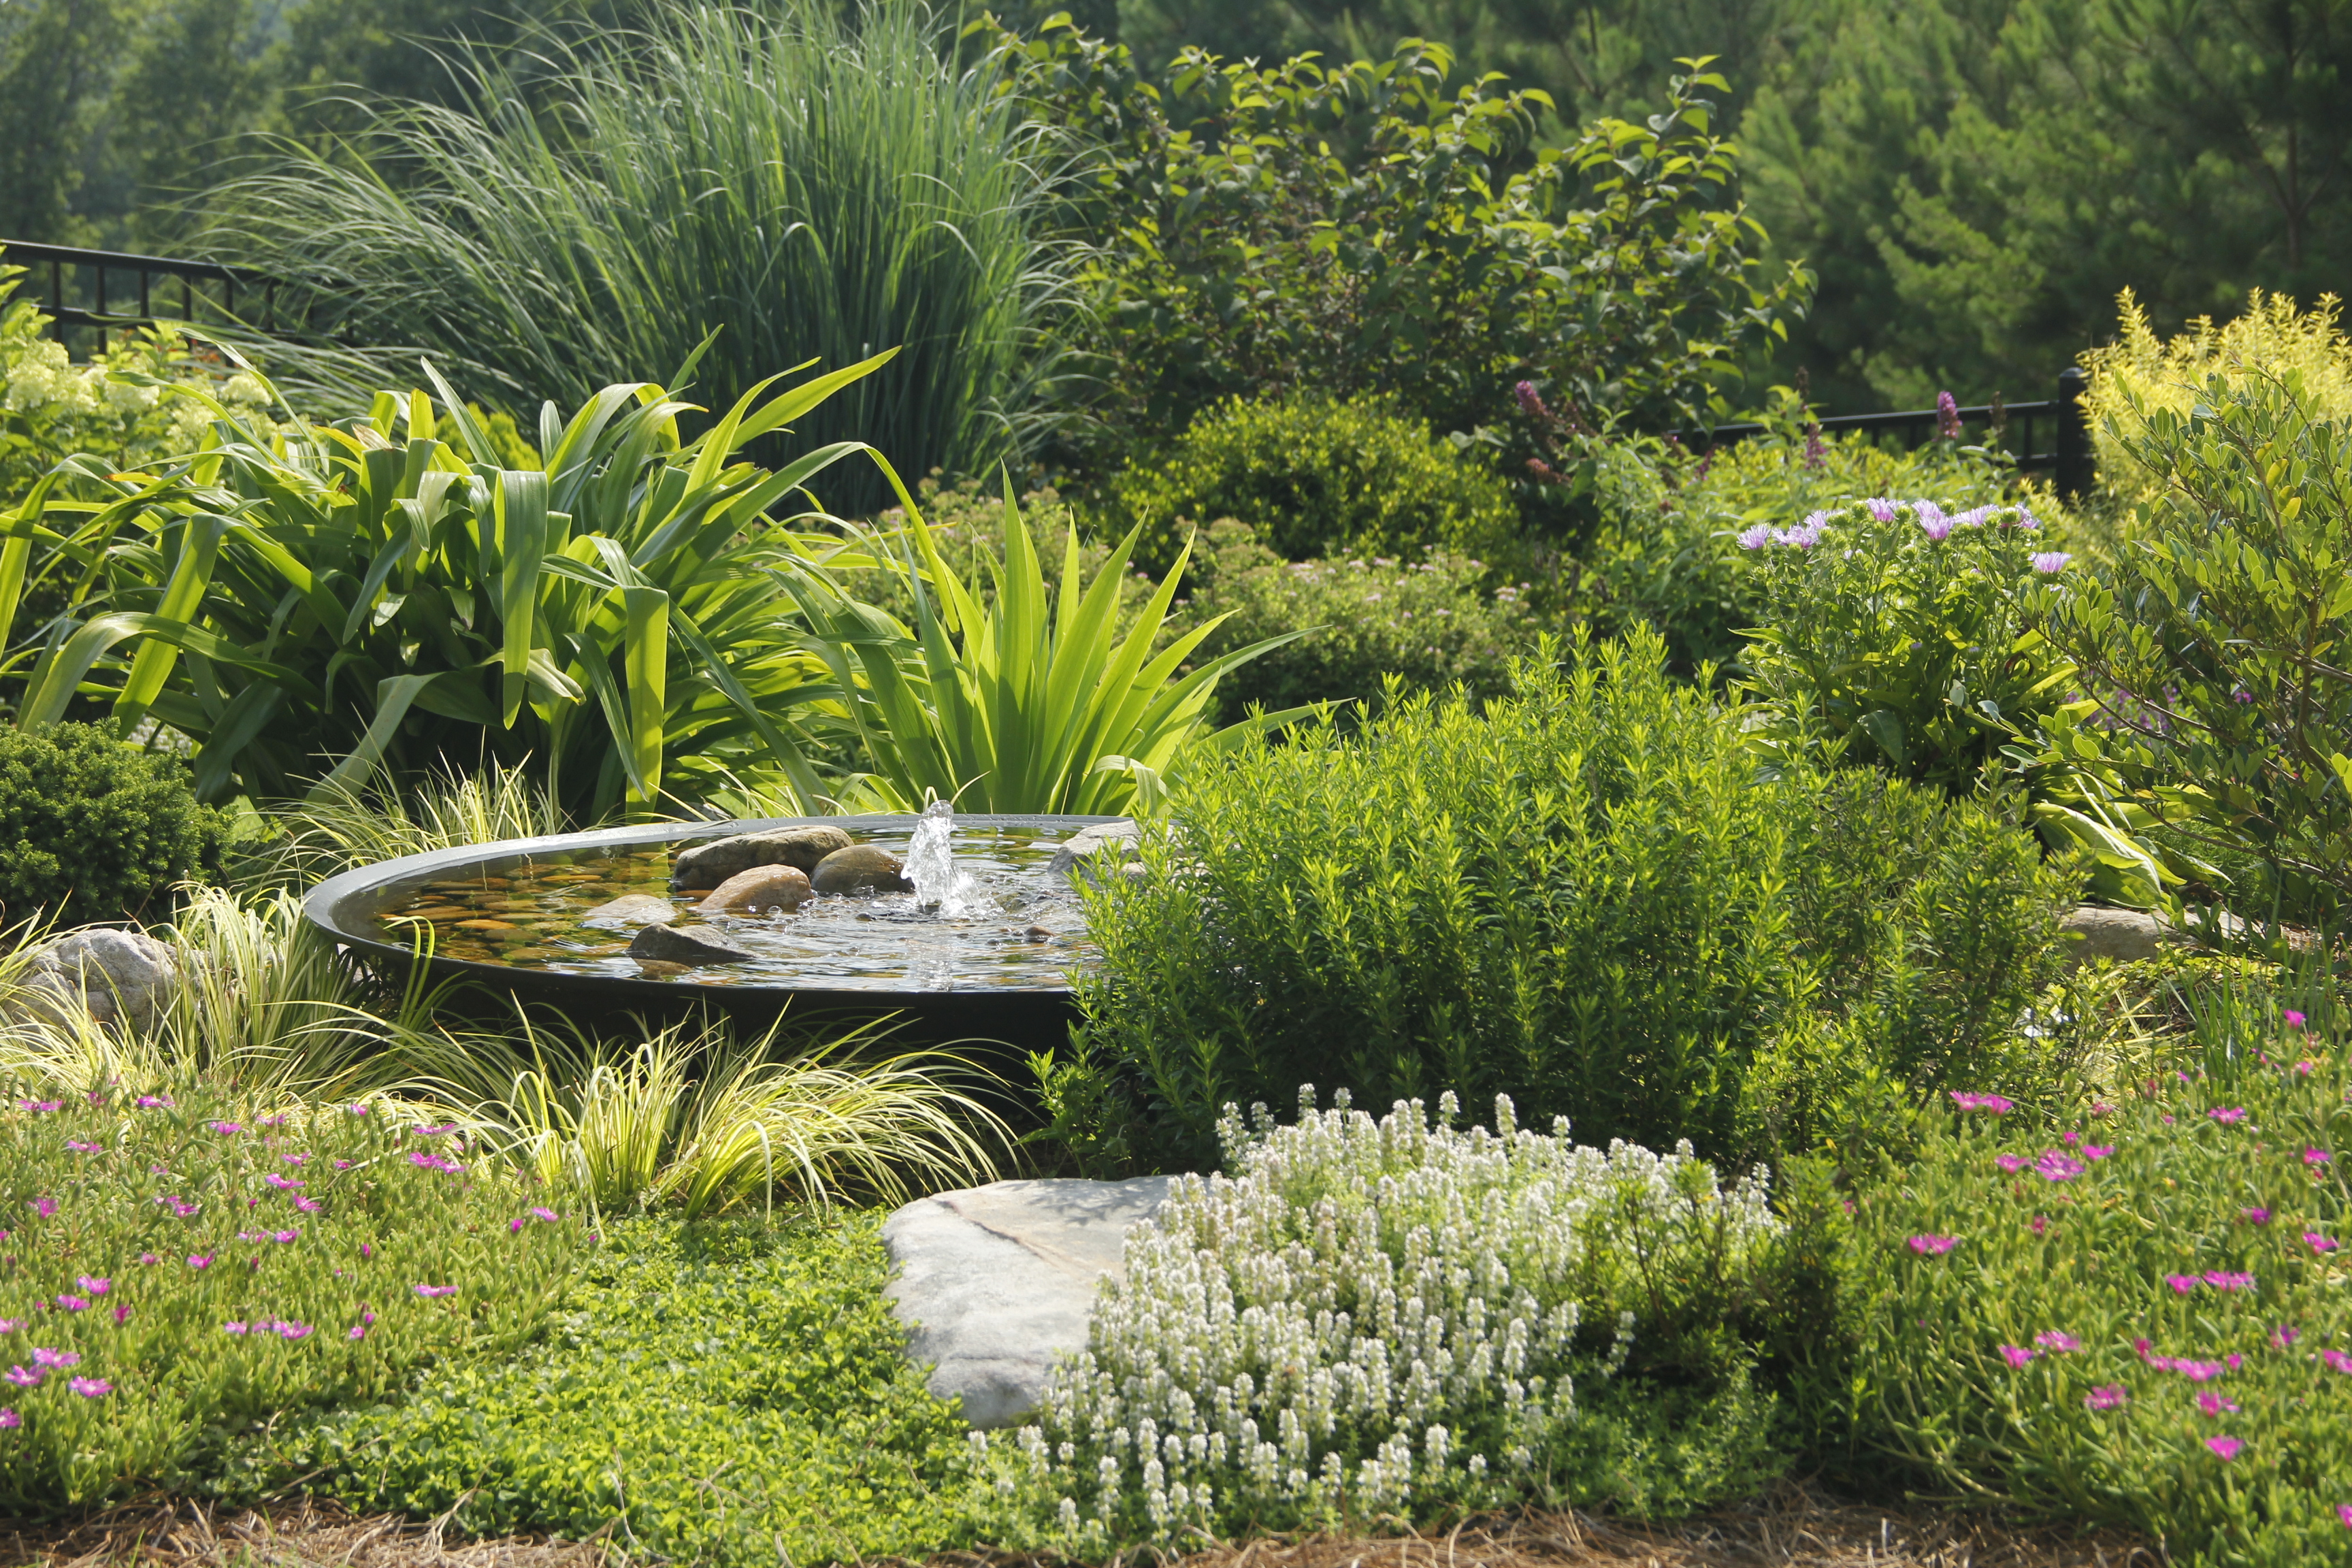 Top Residential landscaping Companies near me - Professional Landscaping Ideas IMG 0068